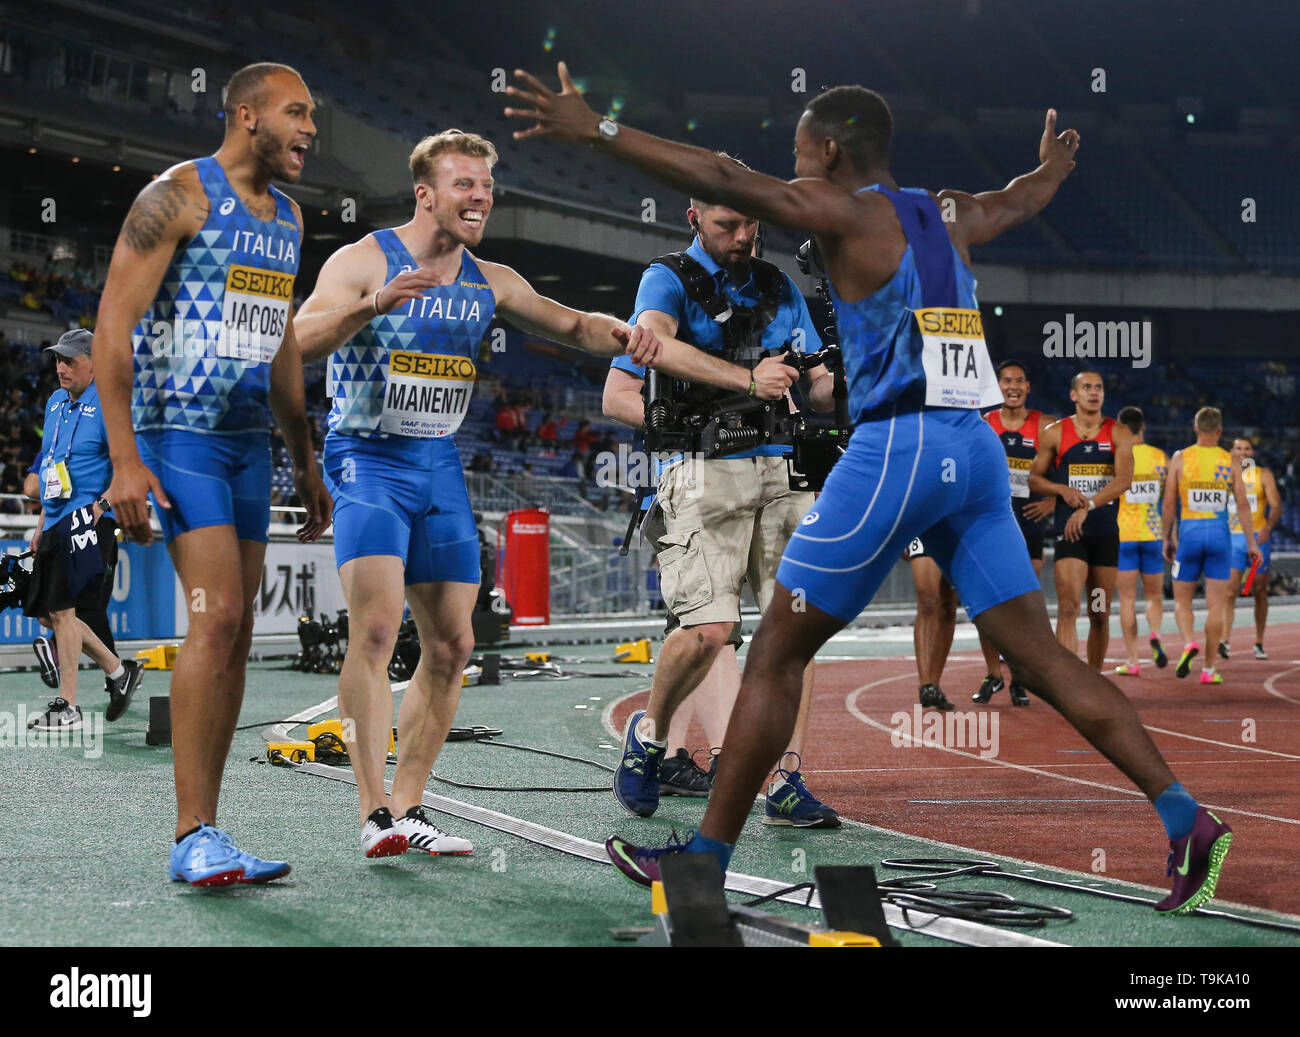 YOKOHAMA, JAPAN - MAY 10: the Italians celebrate after the mens 4x100m relay during Day 1 of the 2019 IAAF World Relay Championships at the Nissan Stadium on Saturday May 11, 2019 in Yokohama, Japan. (Photo by Roger Sedres for the IAAF) - Stock Image